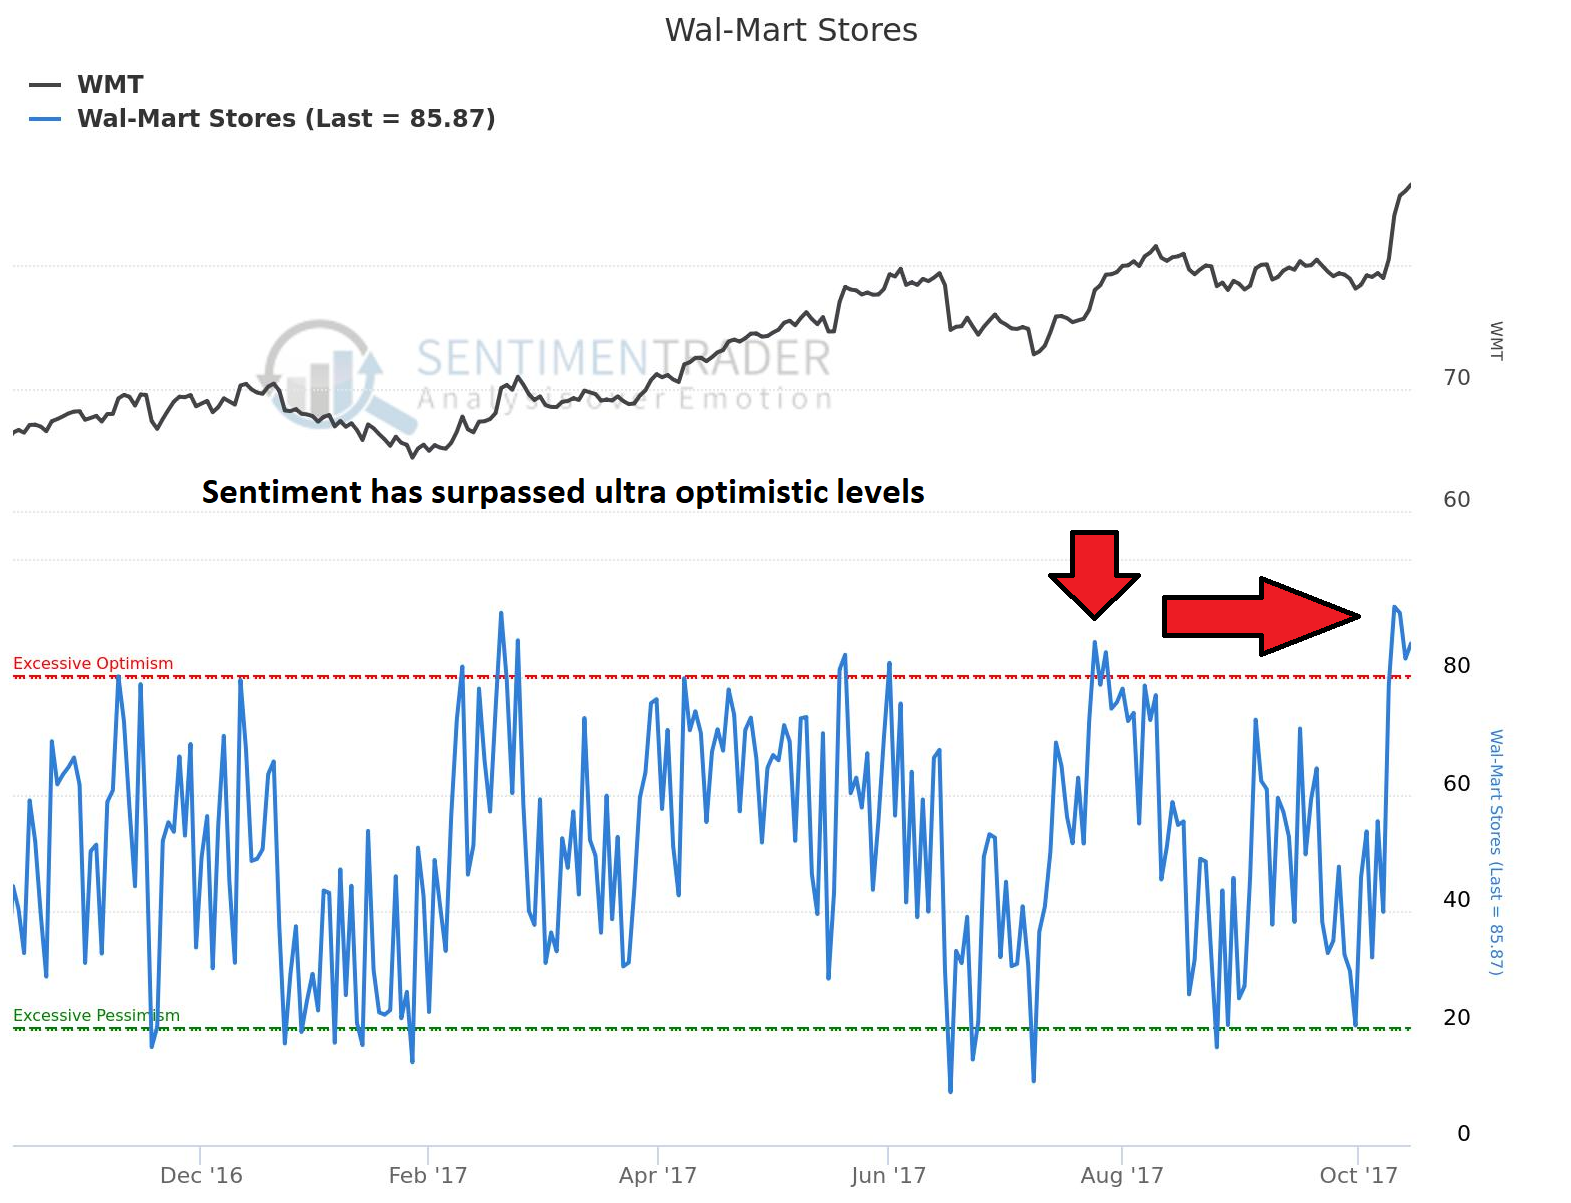 Wal-Mart Stores, Inc. (NYSE:WMT) Under Analyst Spotlight